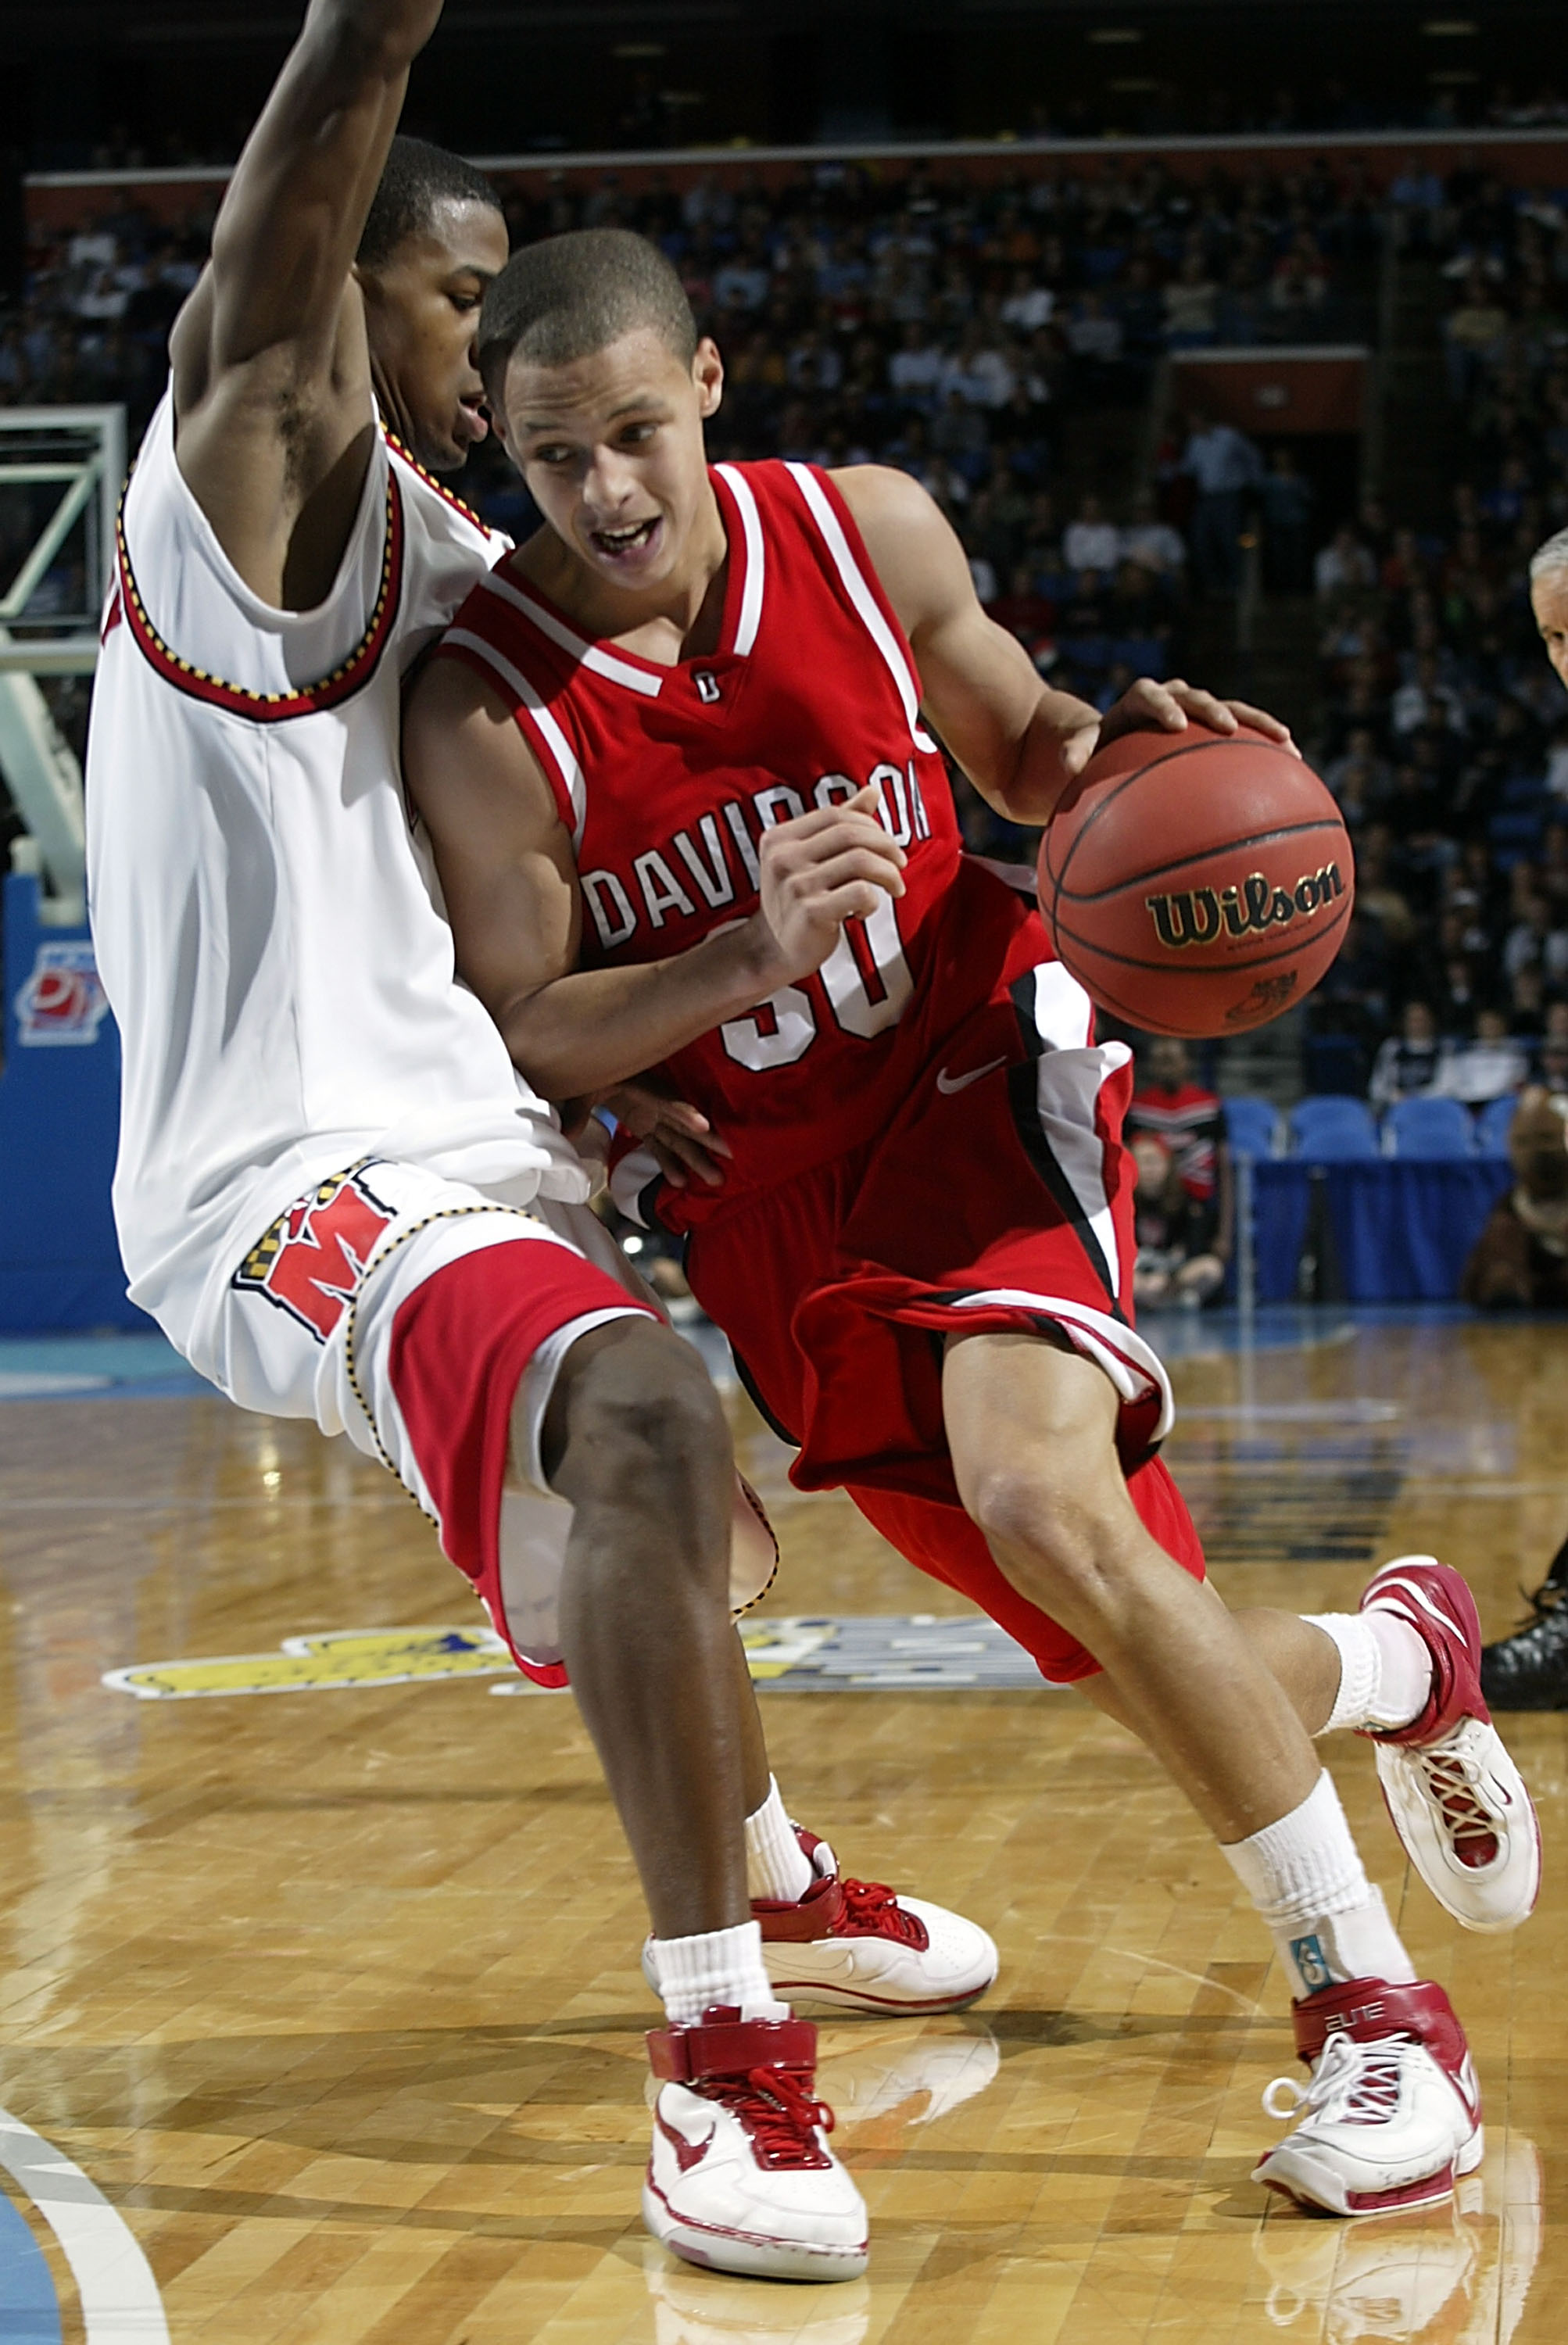 Steph Curry at the 2007 NCAAs